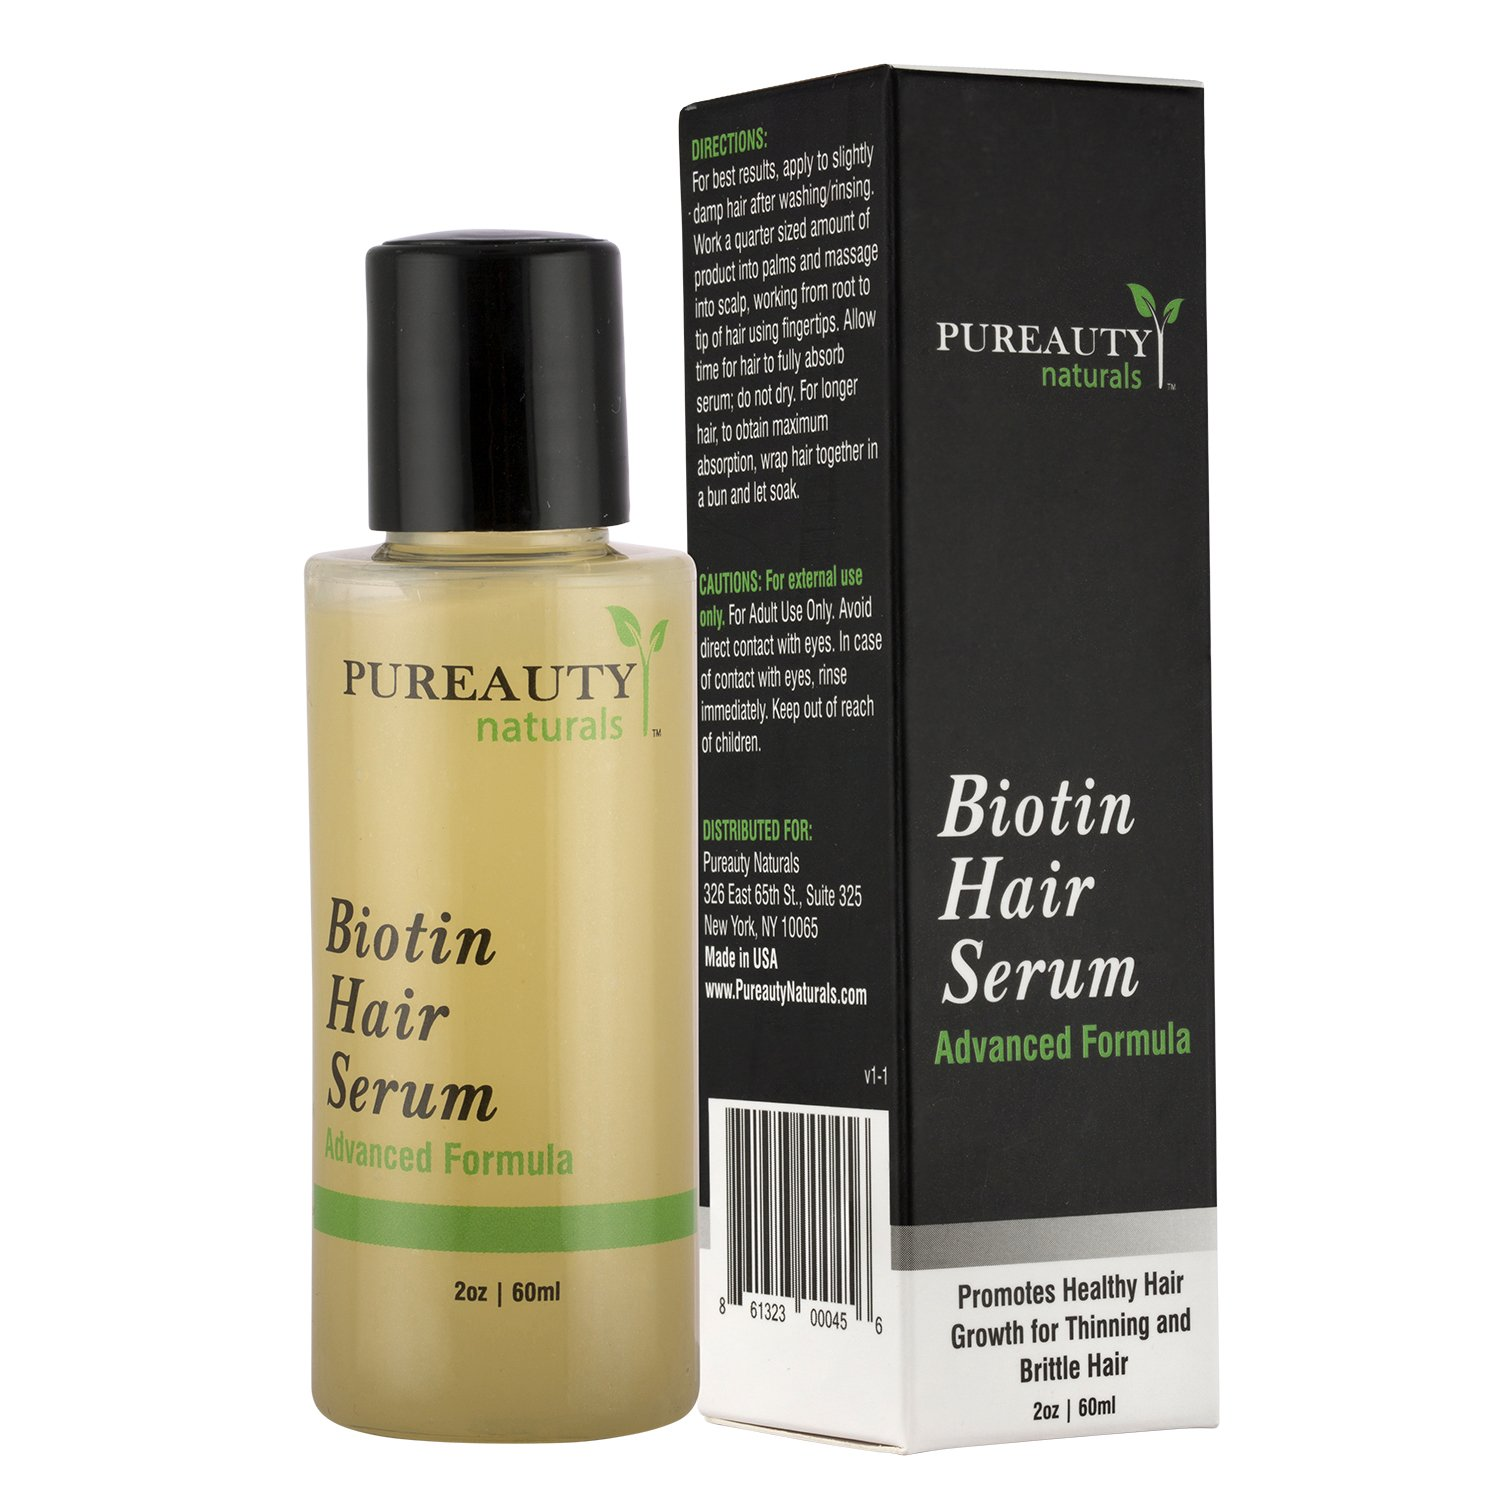 Biotin Hair Growth Serum by Pureauty Naturals – Advanced Topical Formula to Help Grow Healthy, Strong Hair – Suitable For Men & Women Of All Hair Types – Hair Loss Support